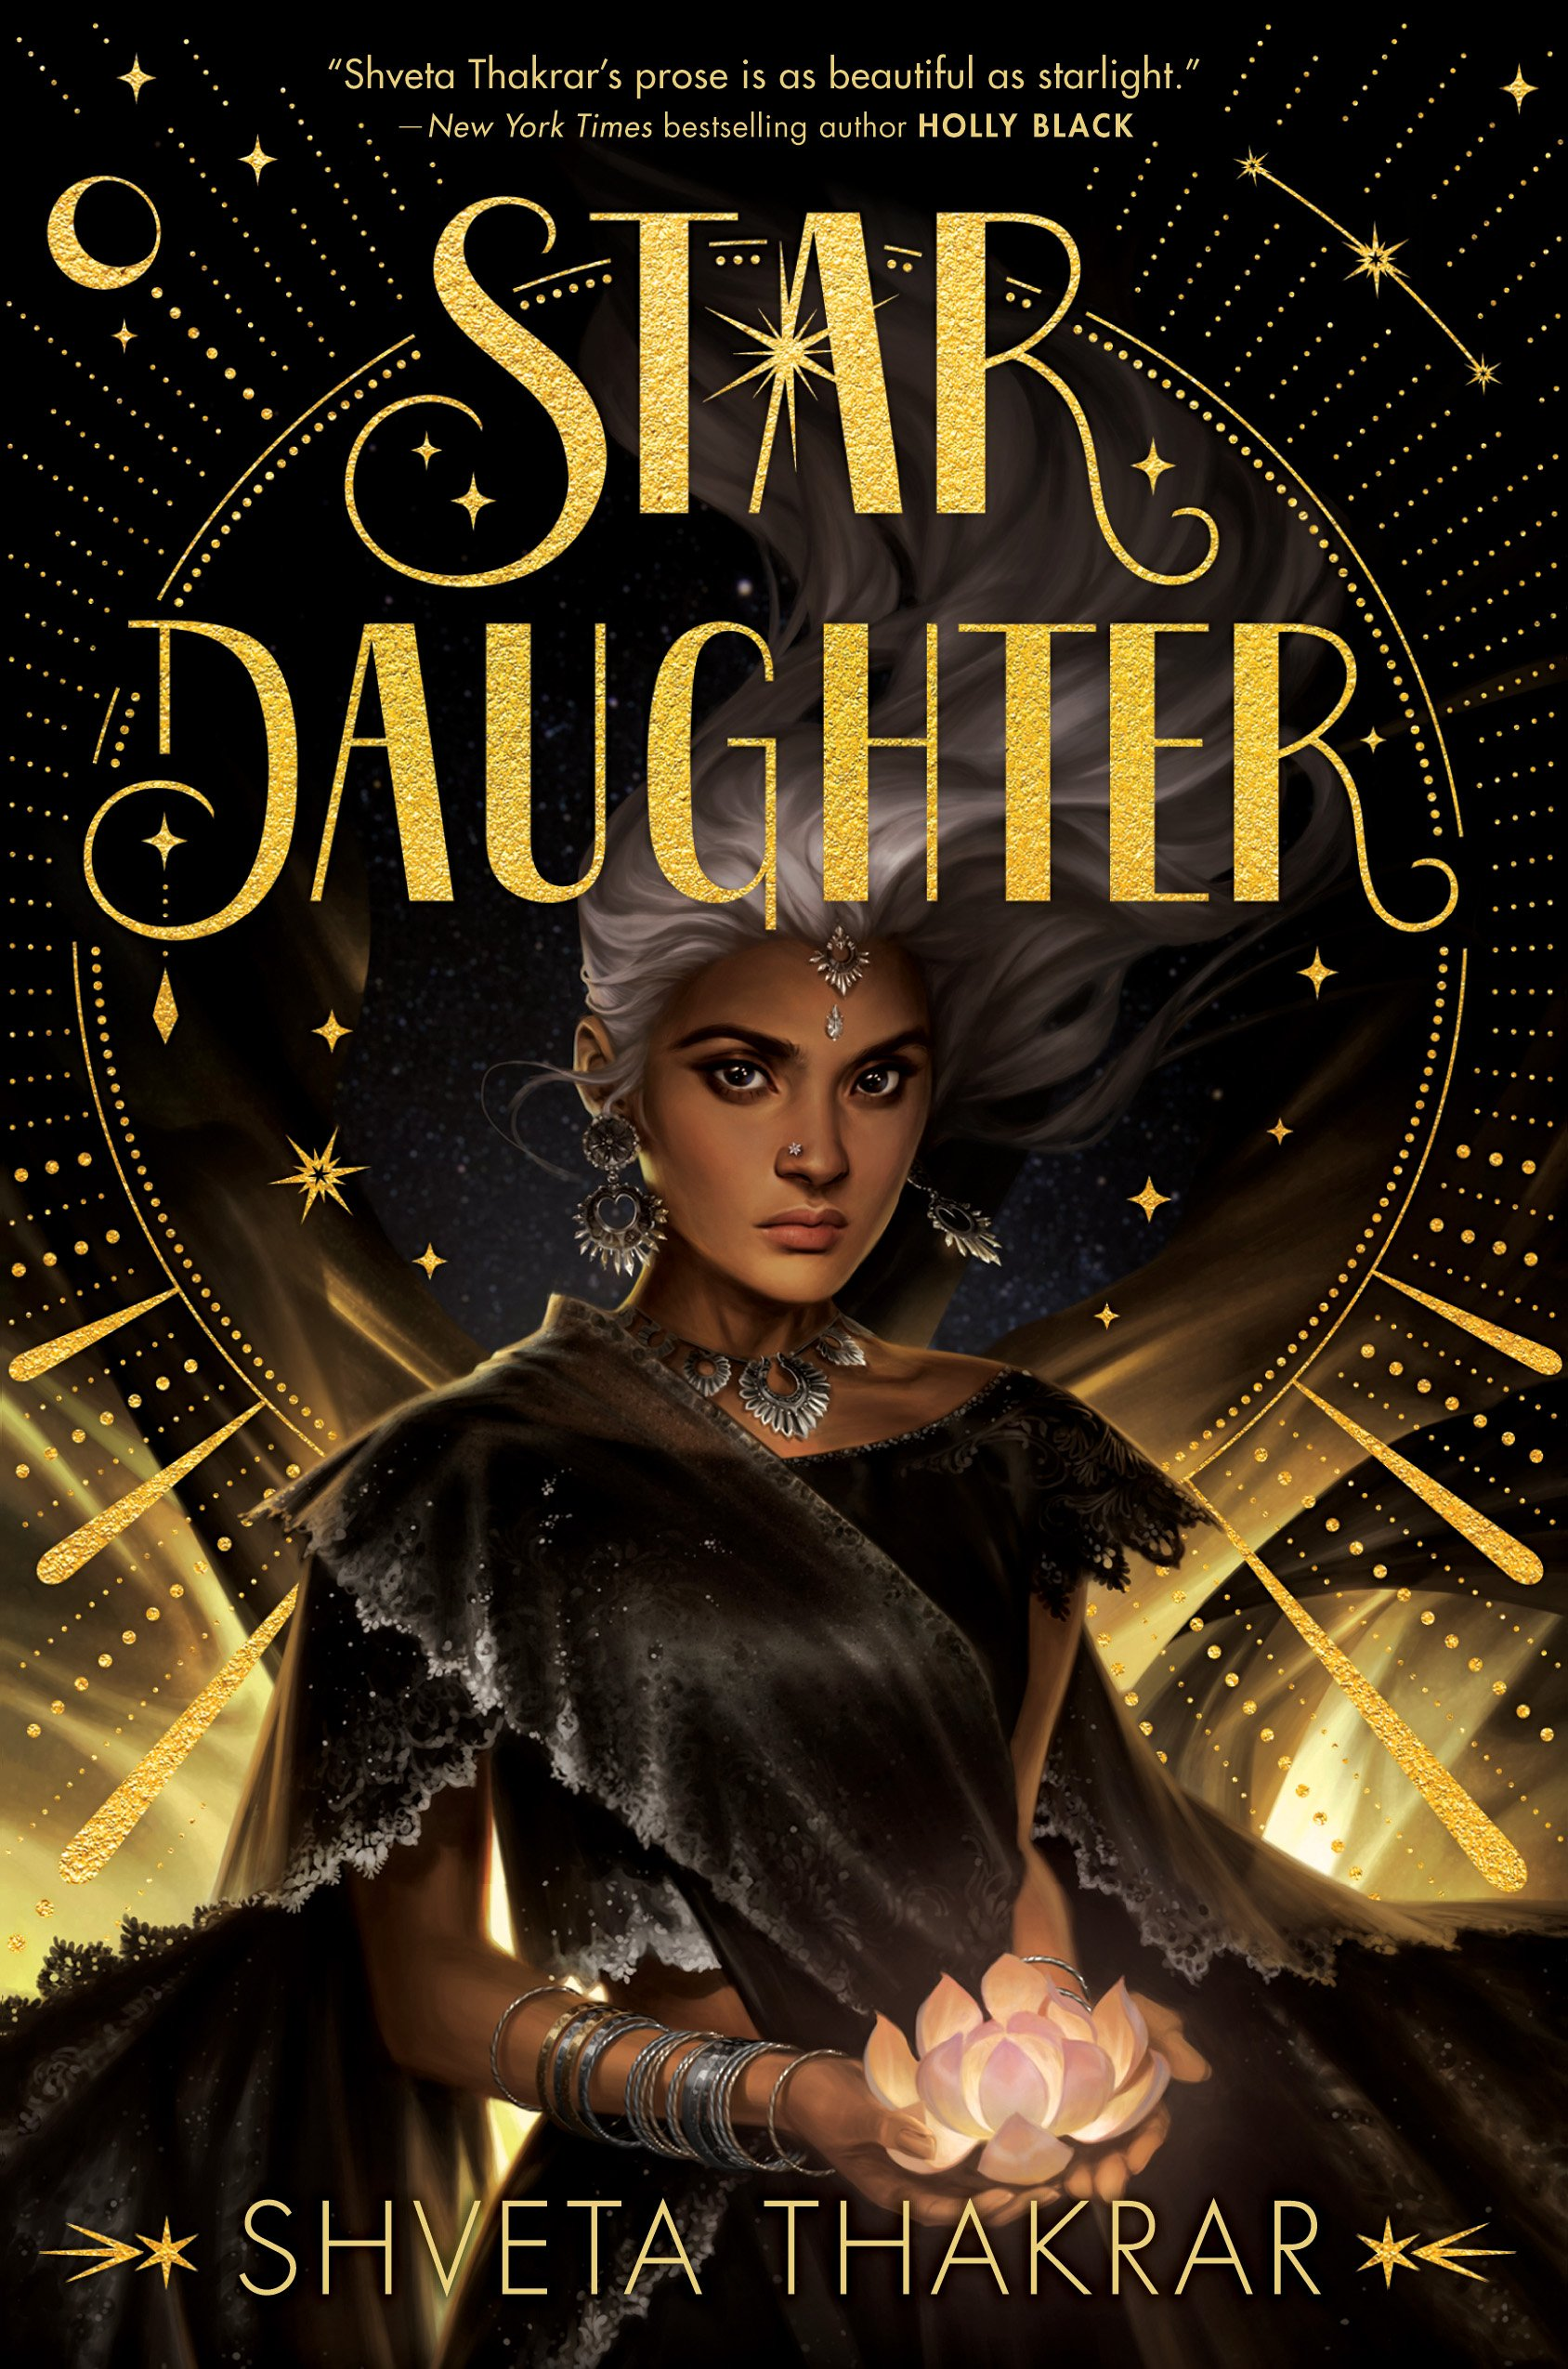 My beautiful gold-and-black cover for STAR DAUGHTER with a lovely brown girl holding a moonlight lotus.